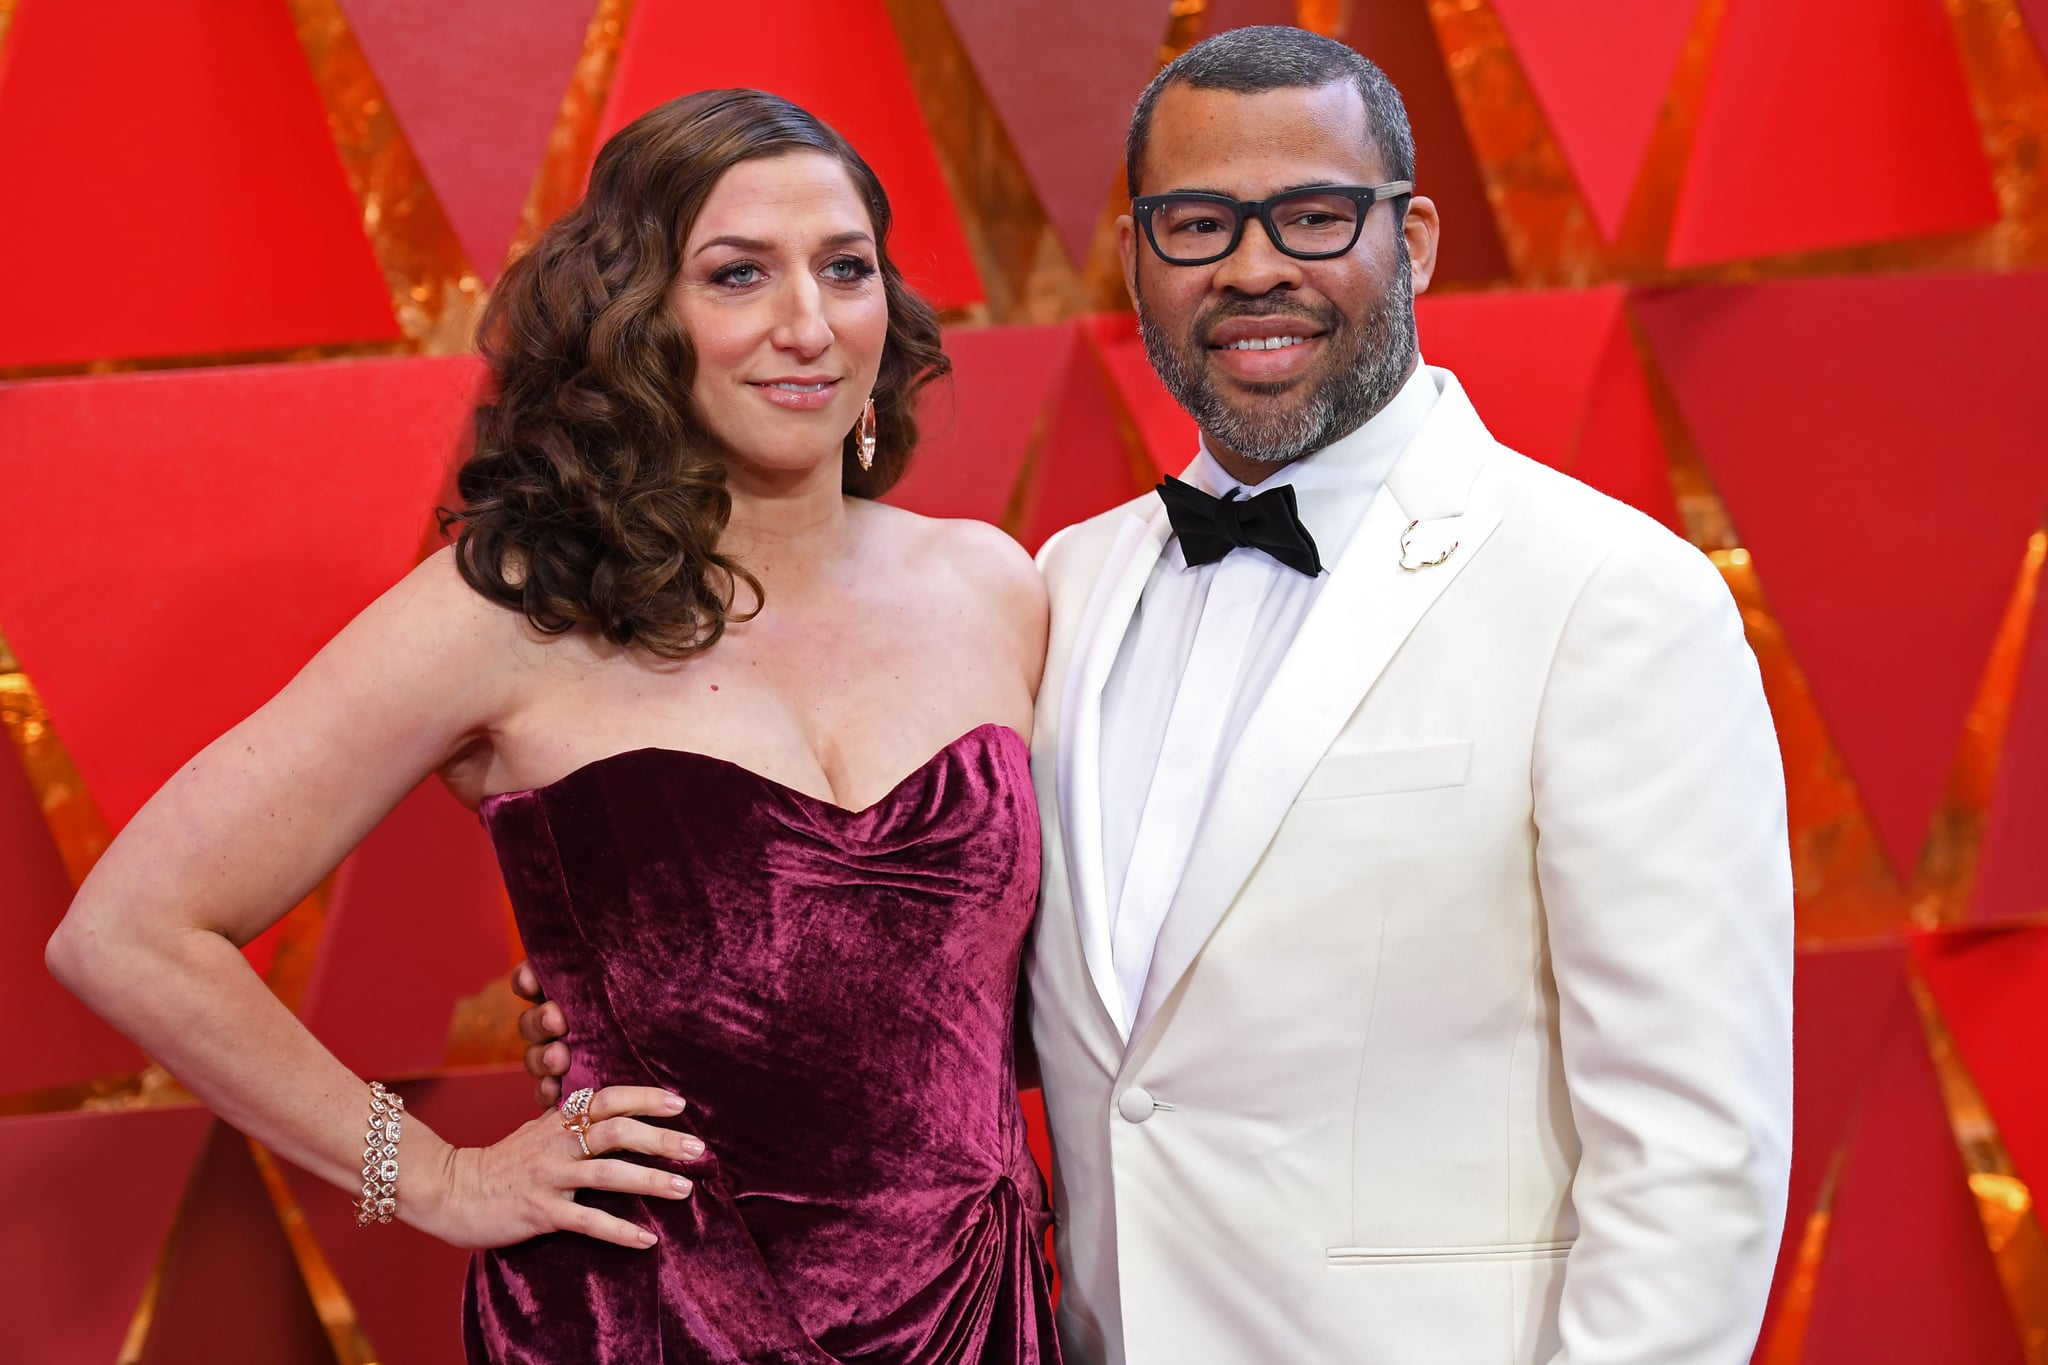 Oscars 2018: Jordan Peele makes history with 'Get Out'